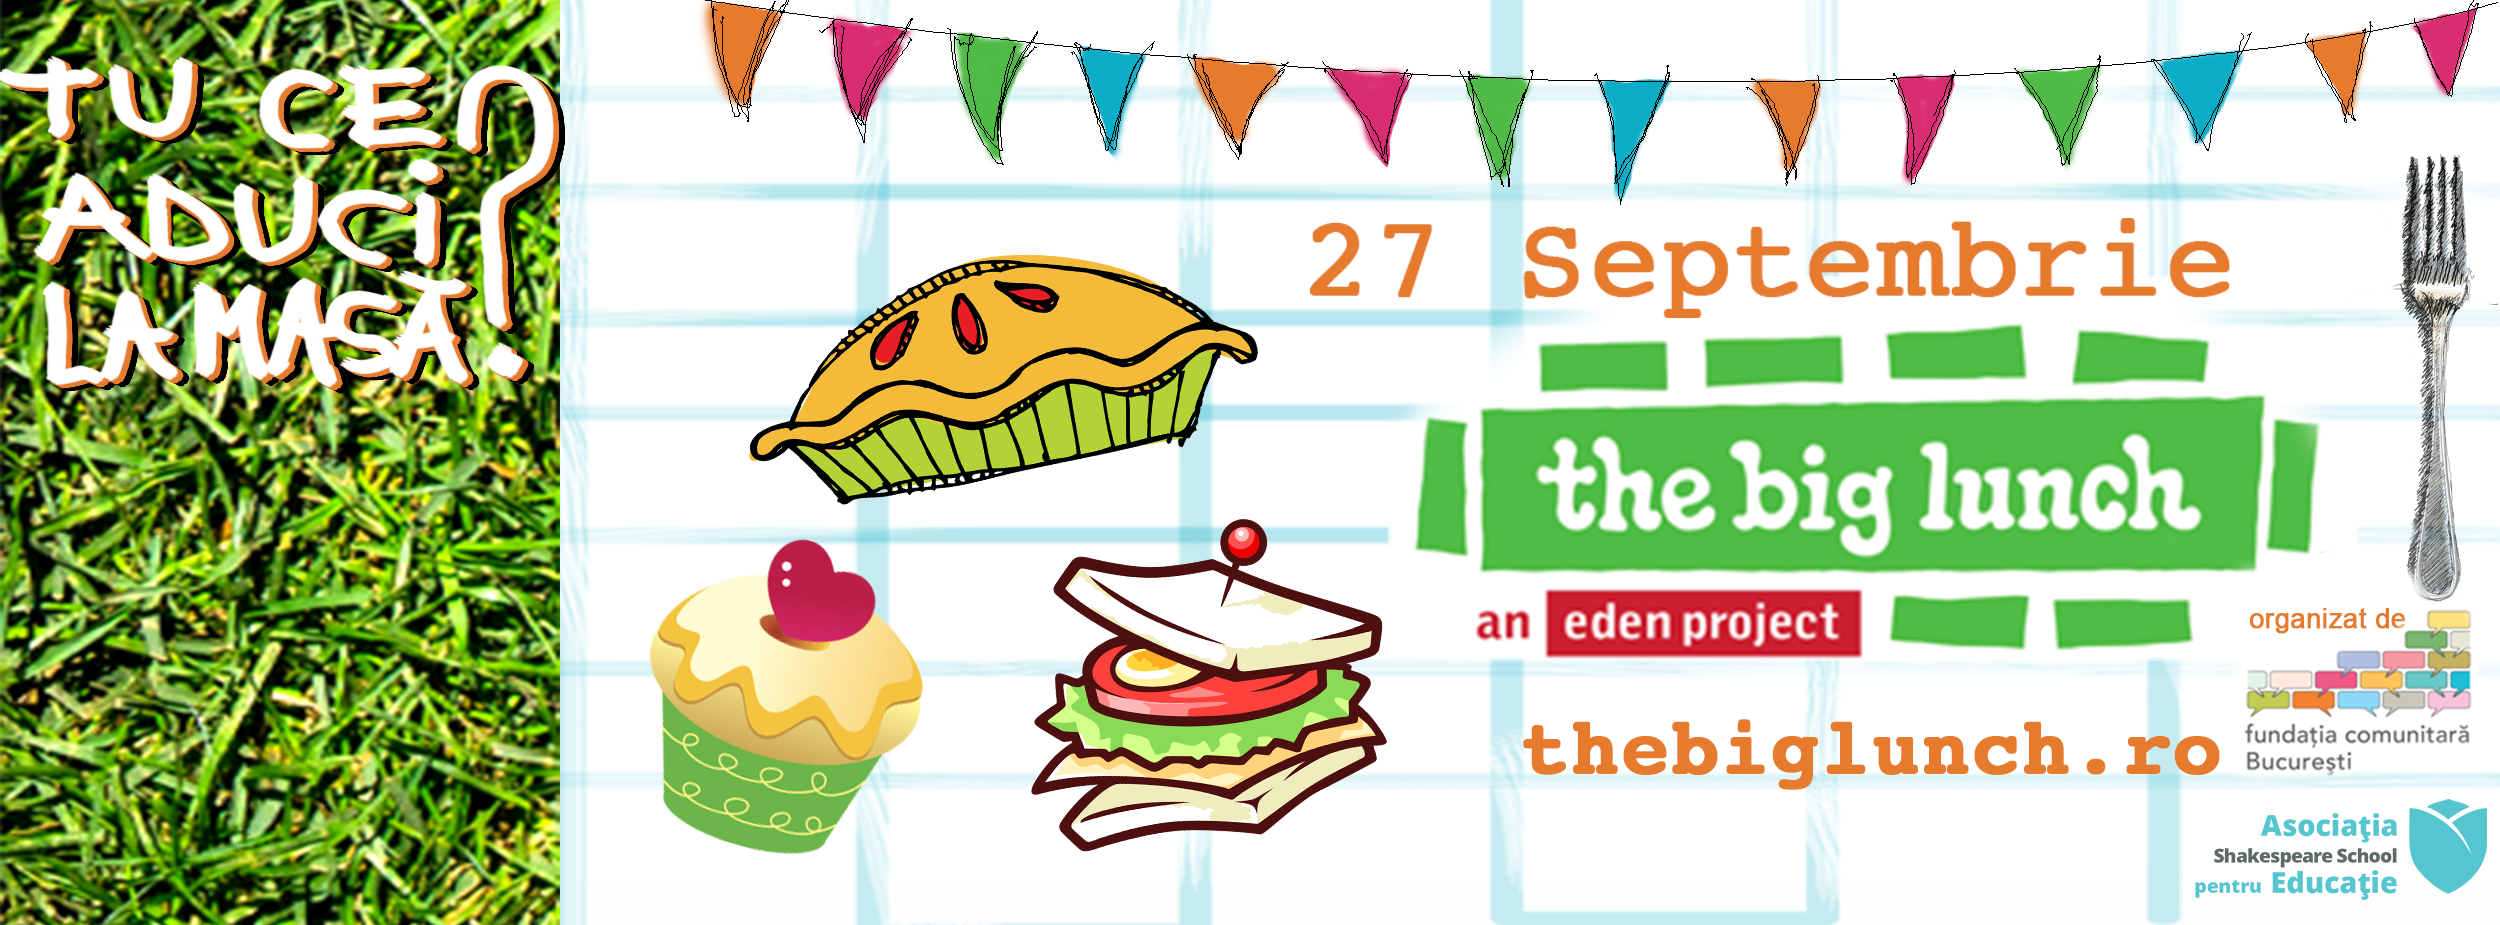 the big lunch FB cover_ASSE